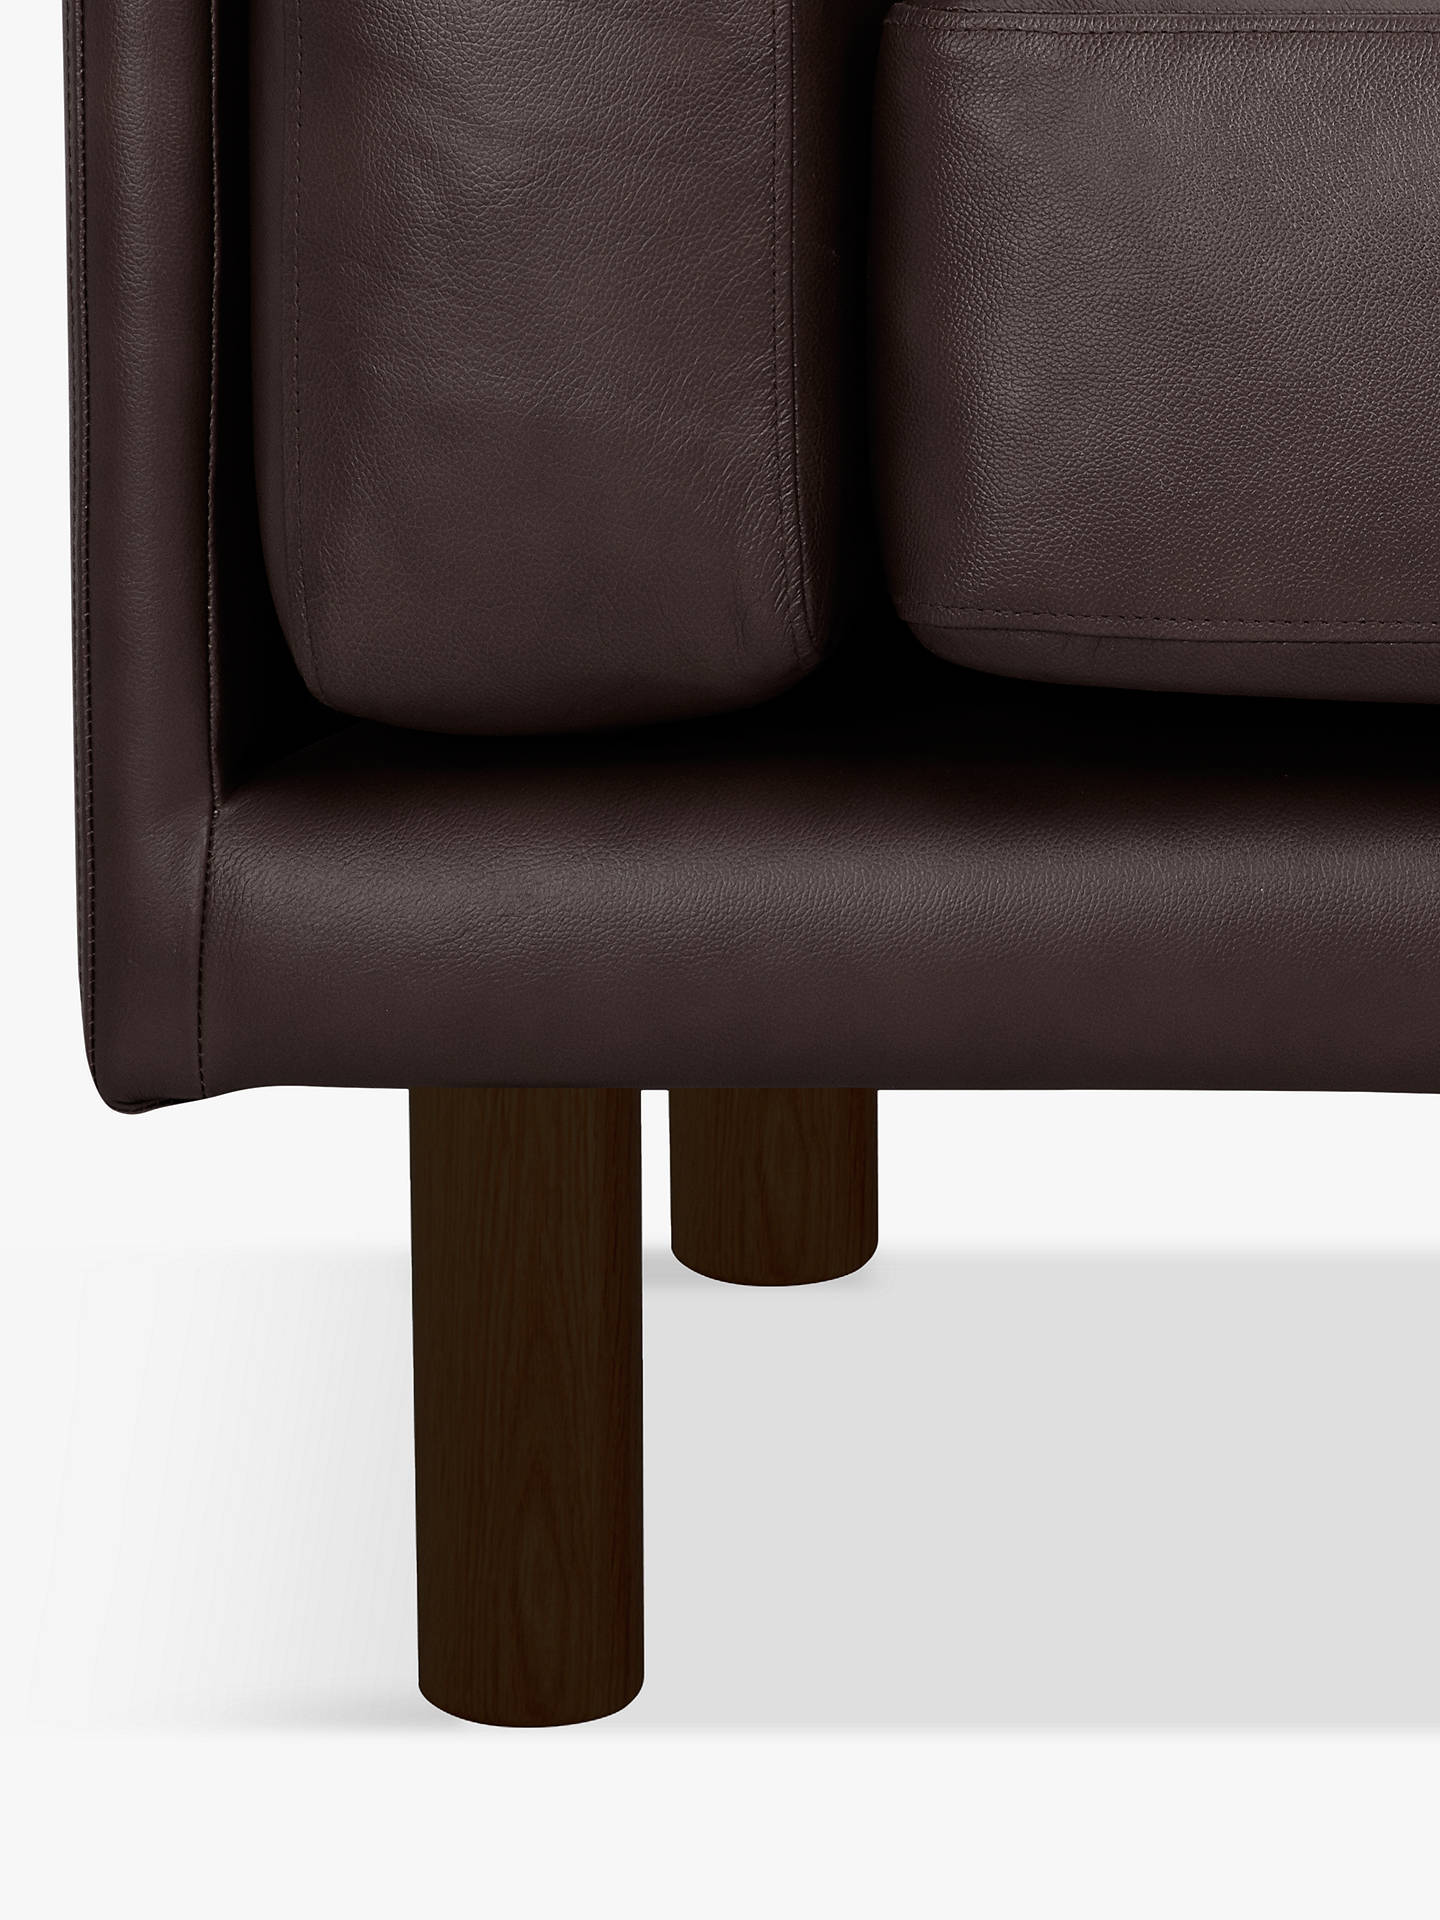 Buy Design Project by John Lewis No.002 Medium 2 Seater Leather Sofa, Dark Leg, Demetra Charcoal Online at johnlewis.com